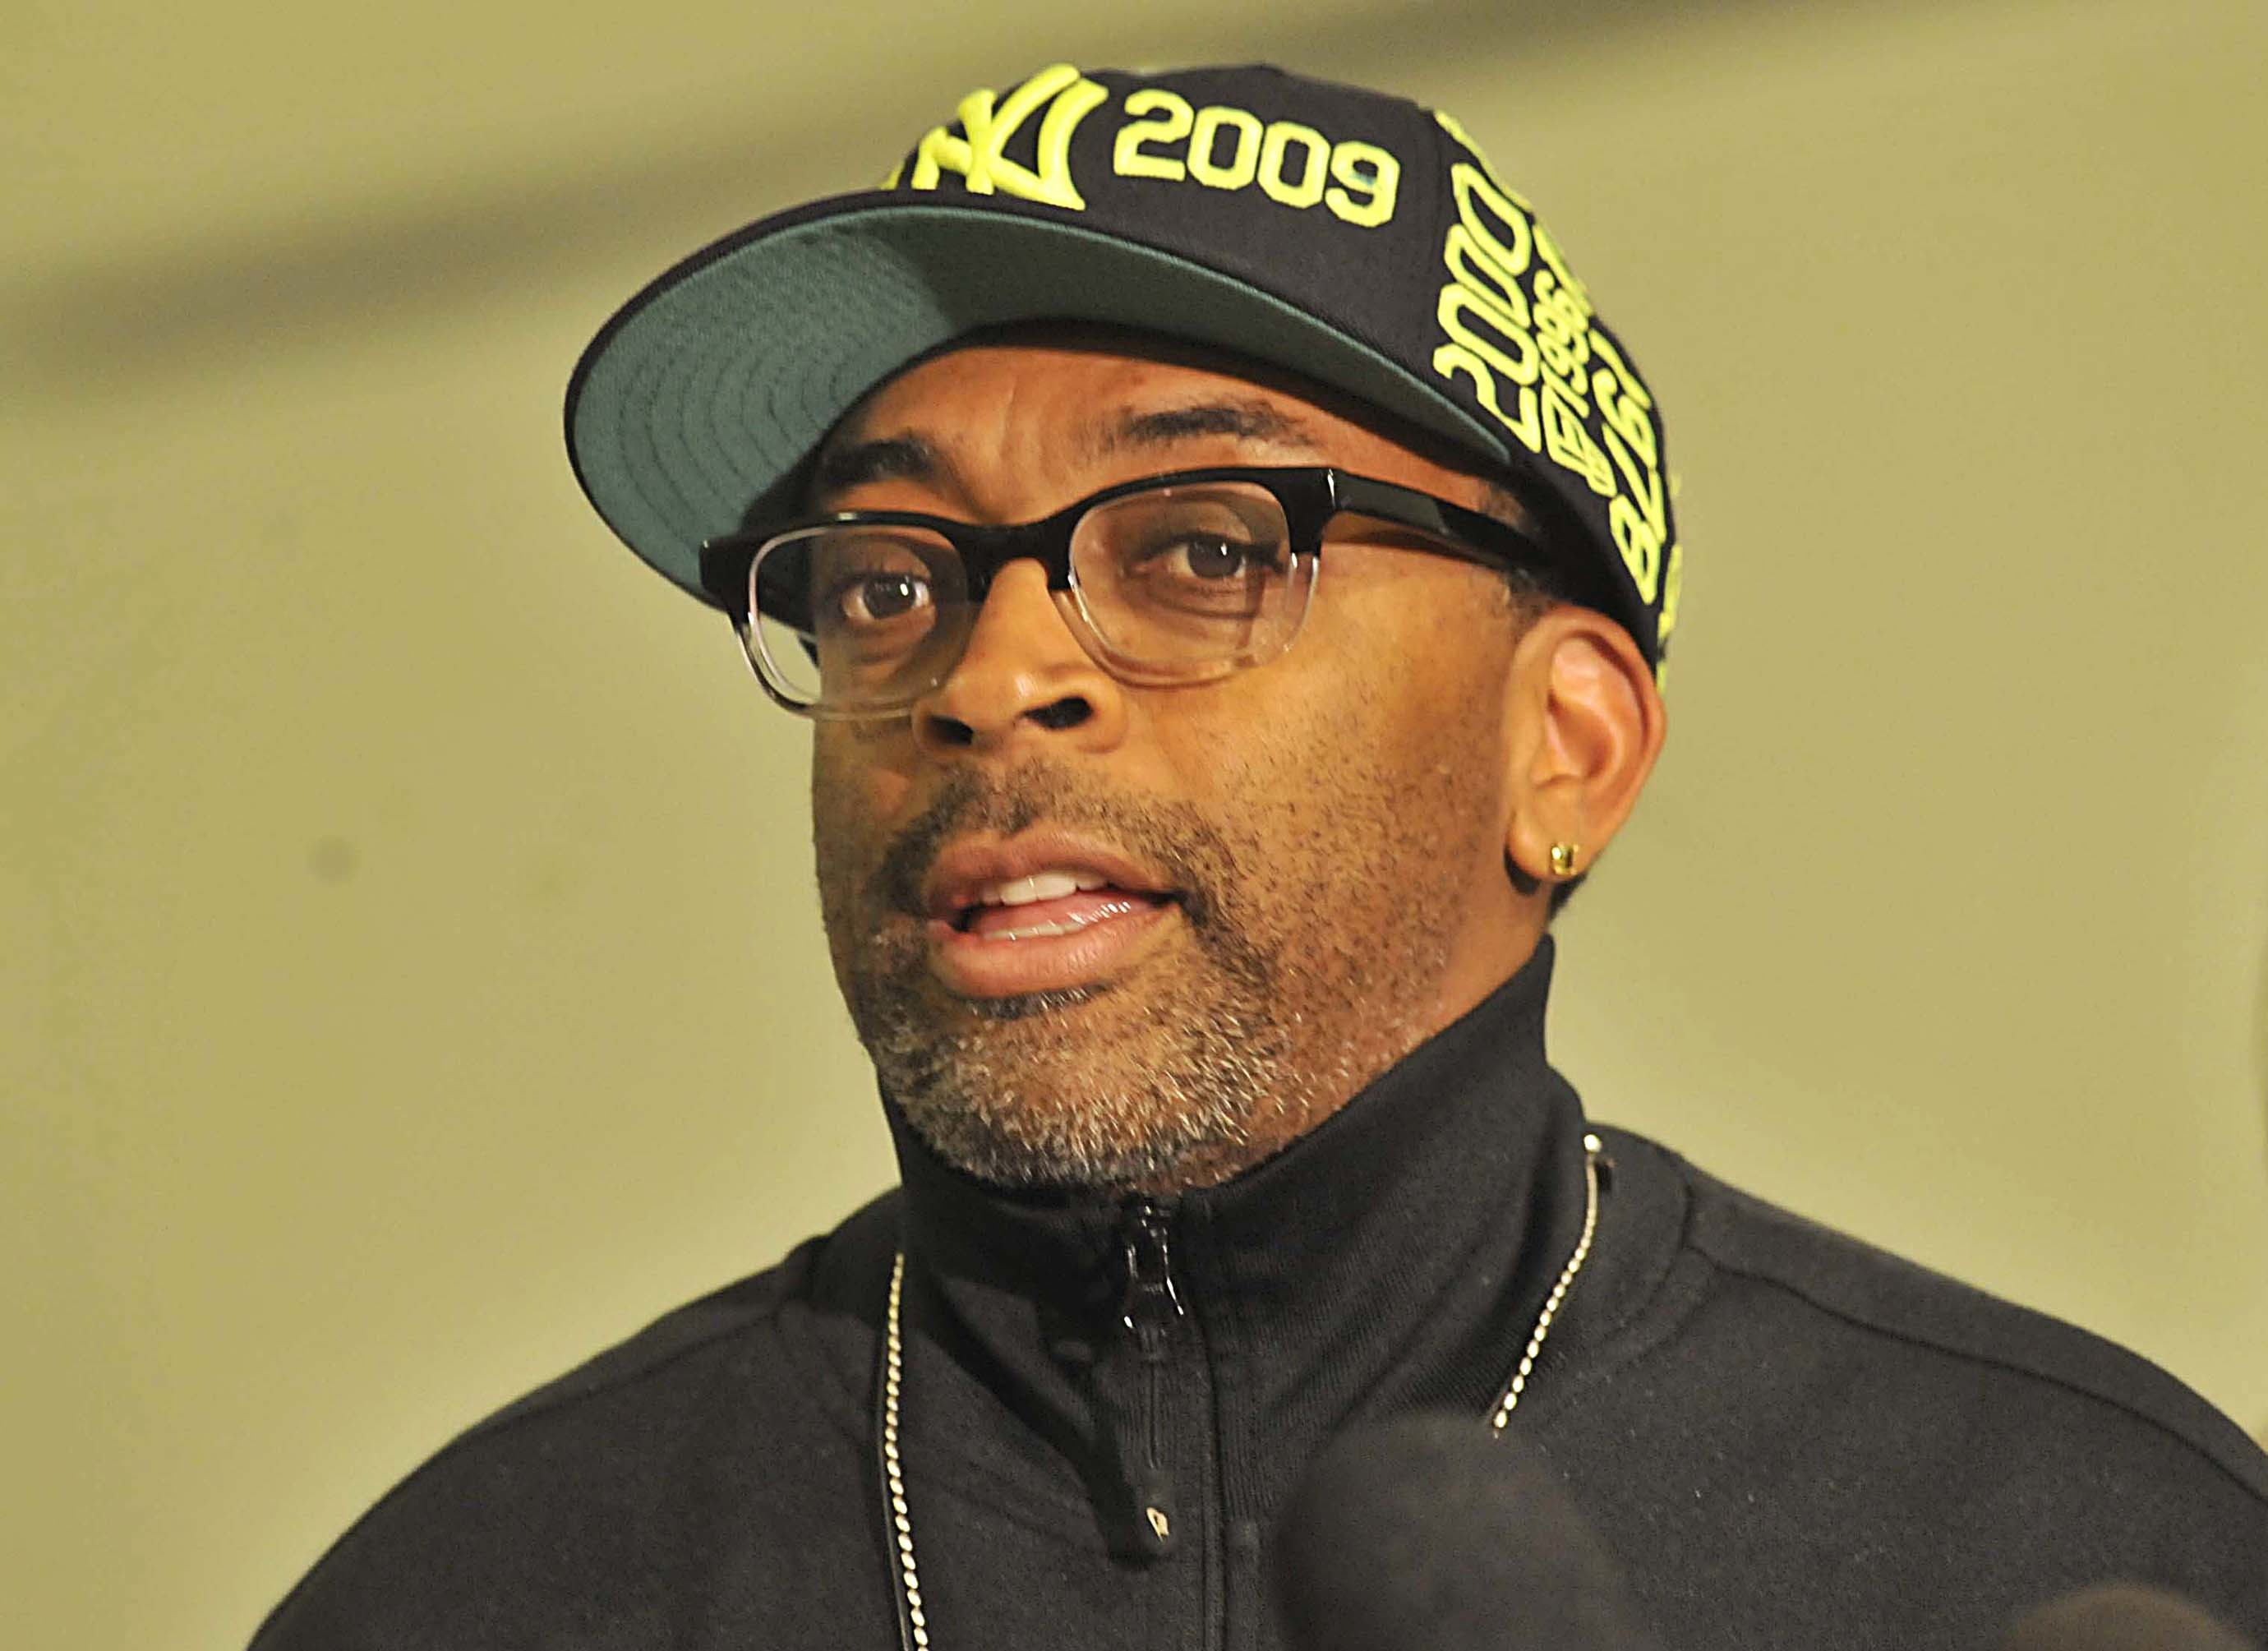 Spike Lee's 'Chiraq' to hold casting call, hints at possible title change